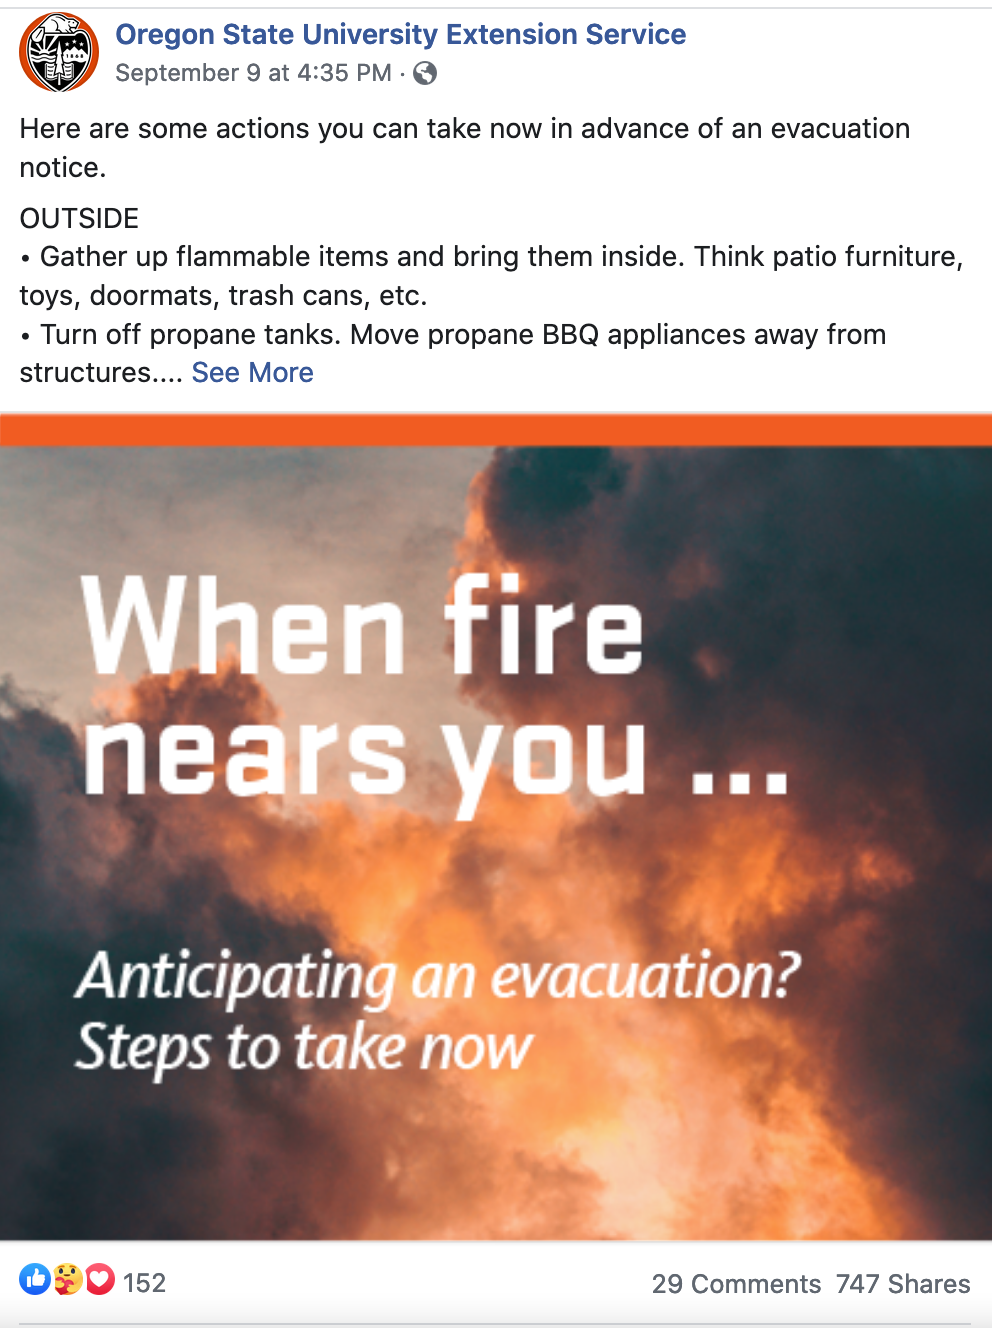 "Post with infographic ""When the fire nears you... Anticipating an evacuation? Steps to take now"" with steps listed. Shared 747 times and 29 comments."